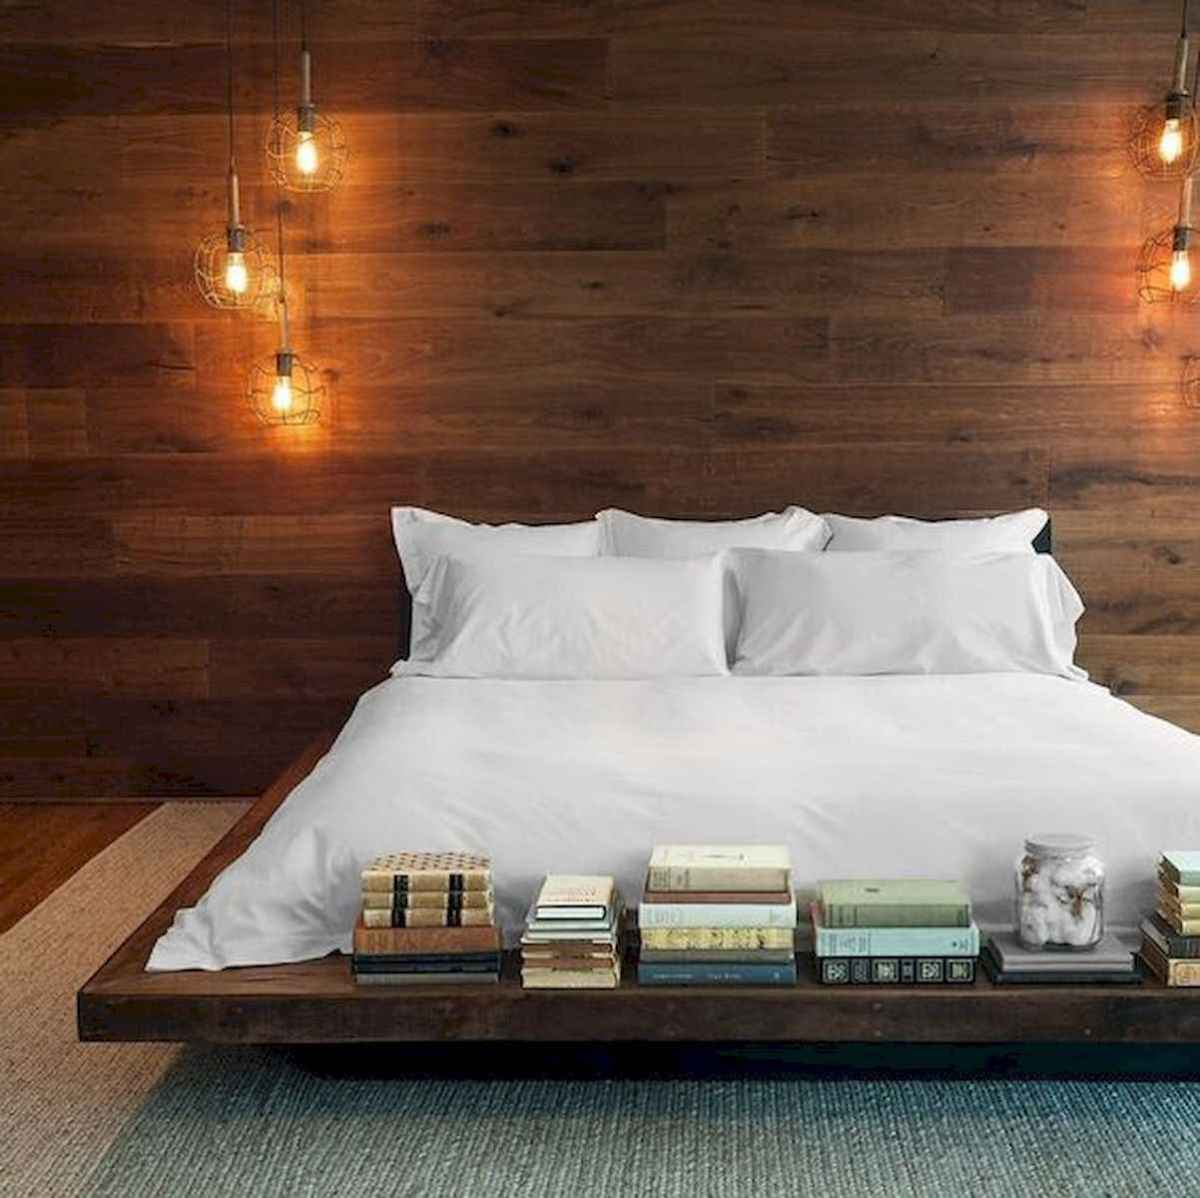 50 Creative Recycled DIY Projects Pallet Beds Design Ideas (48)